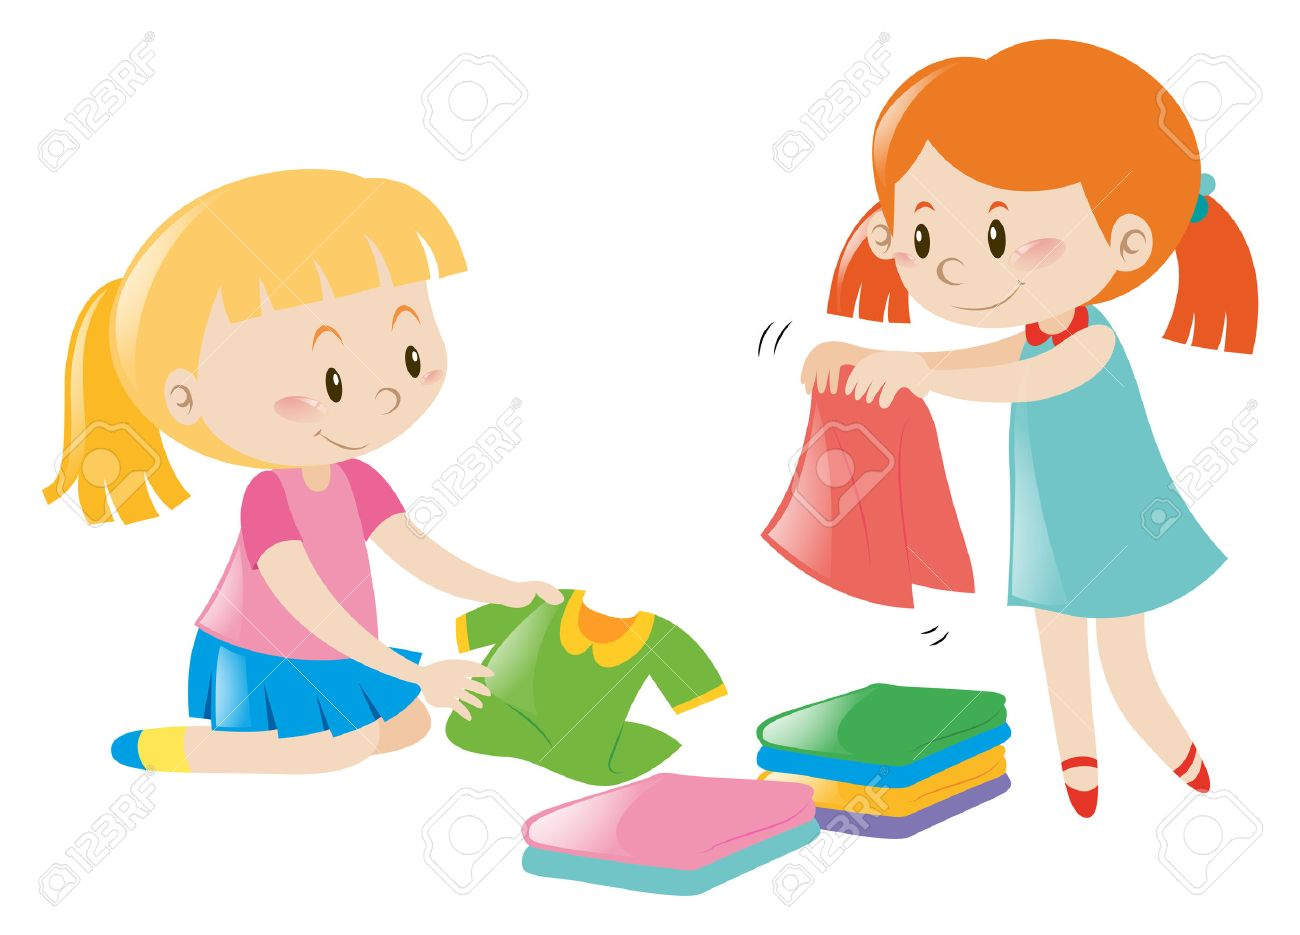 Two girls folding clothes illustration.